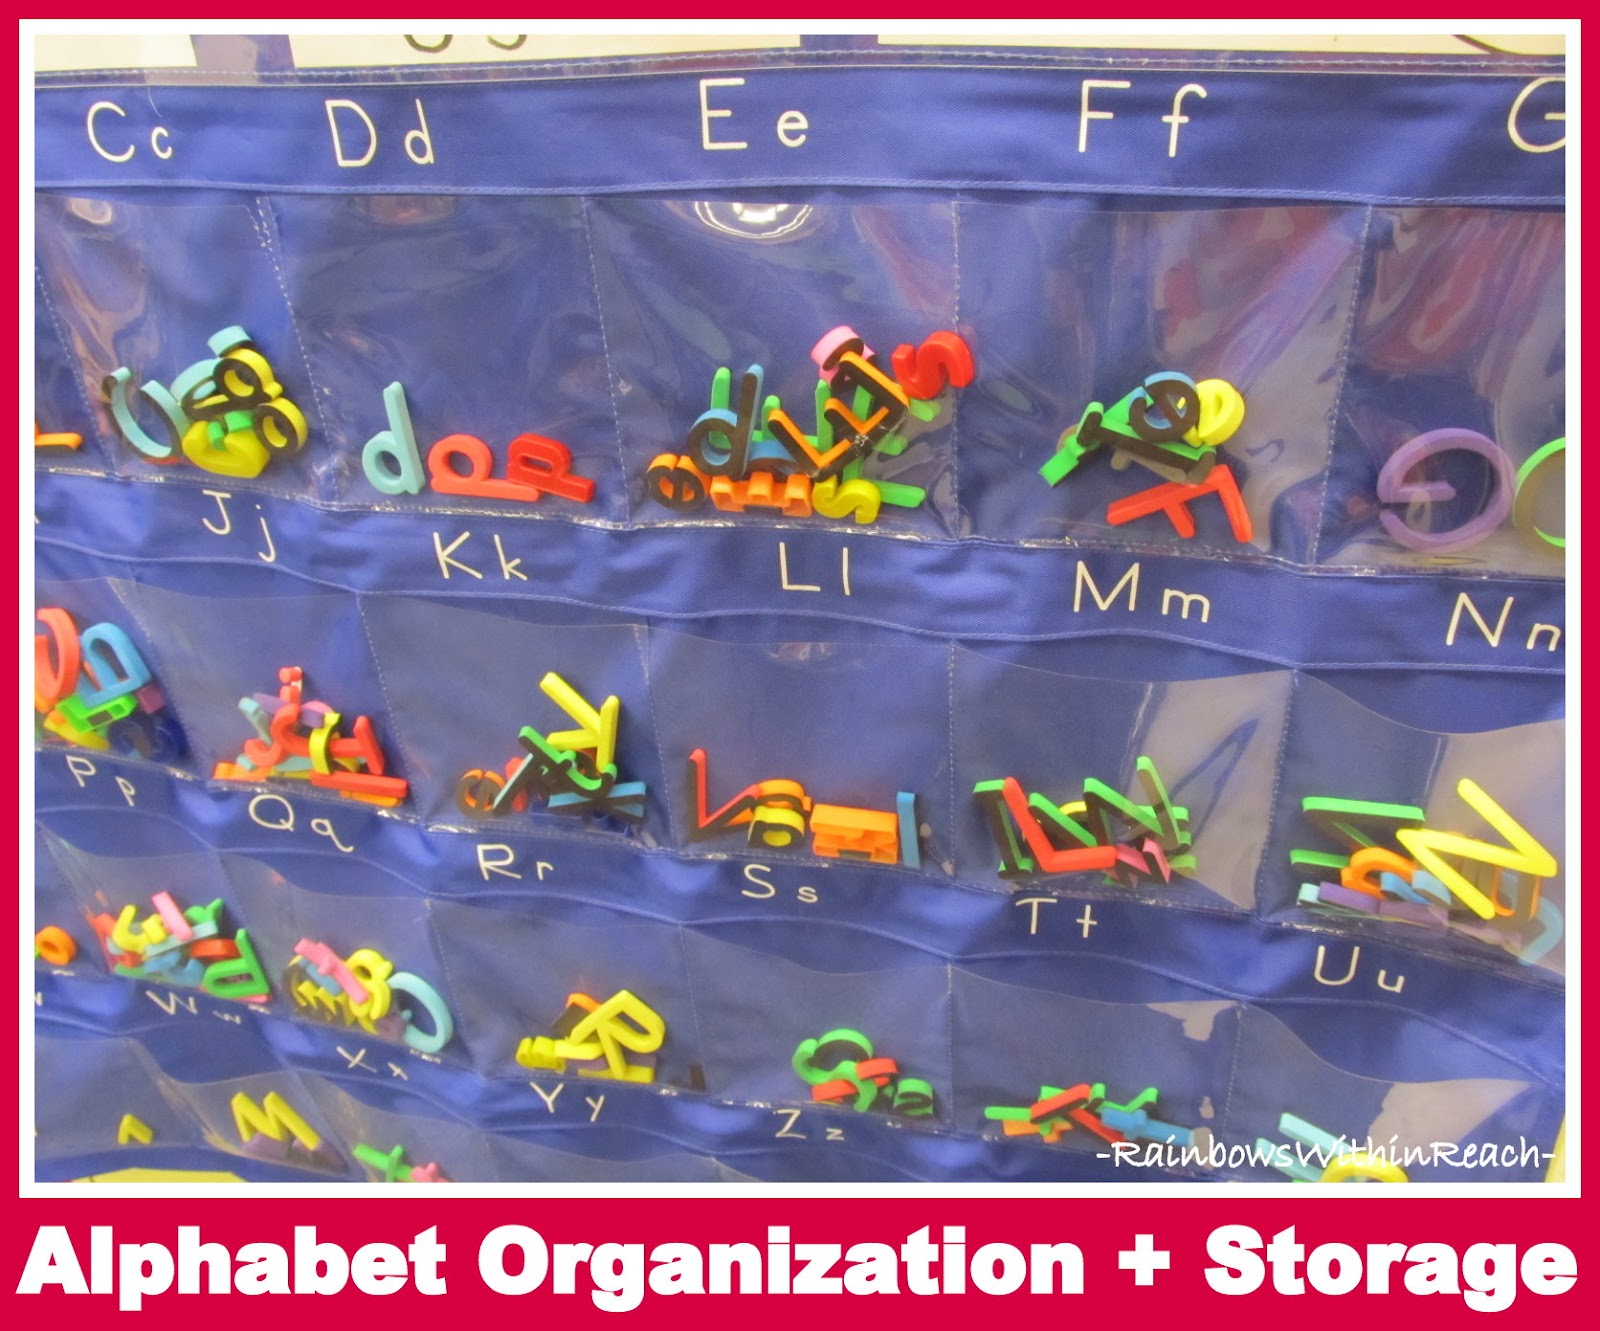 Photo Of: Alphabet Organization + Storage (Organizational RoundUP Via  RainbowsWIthinReach)